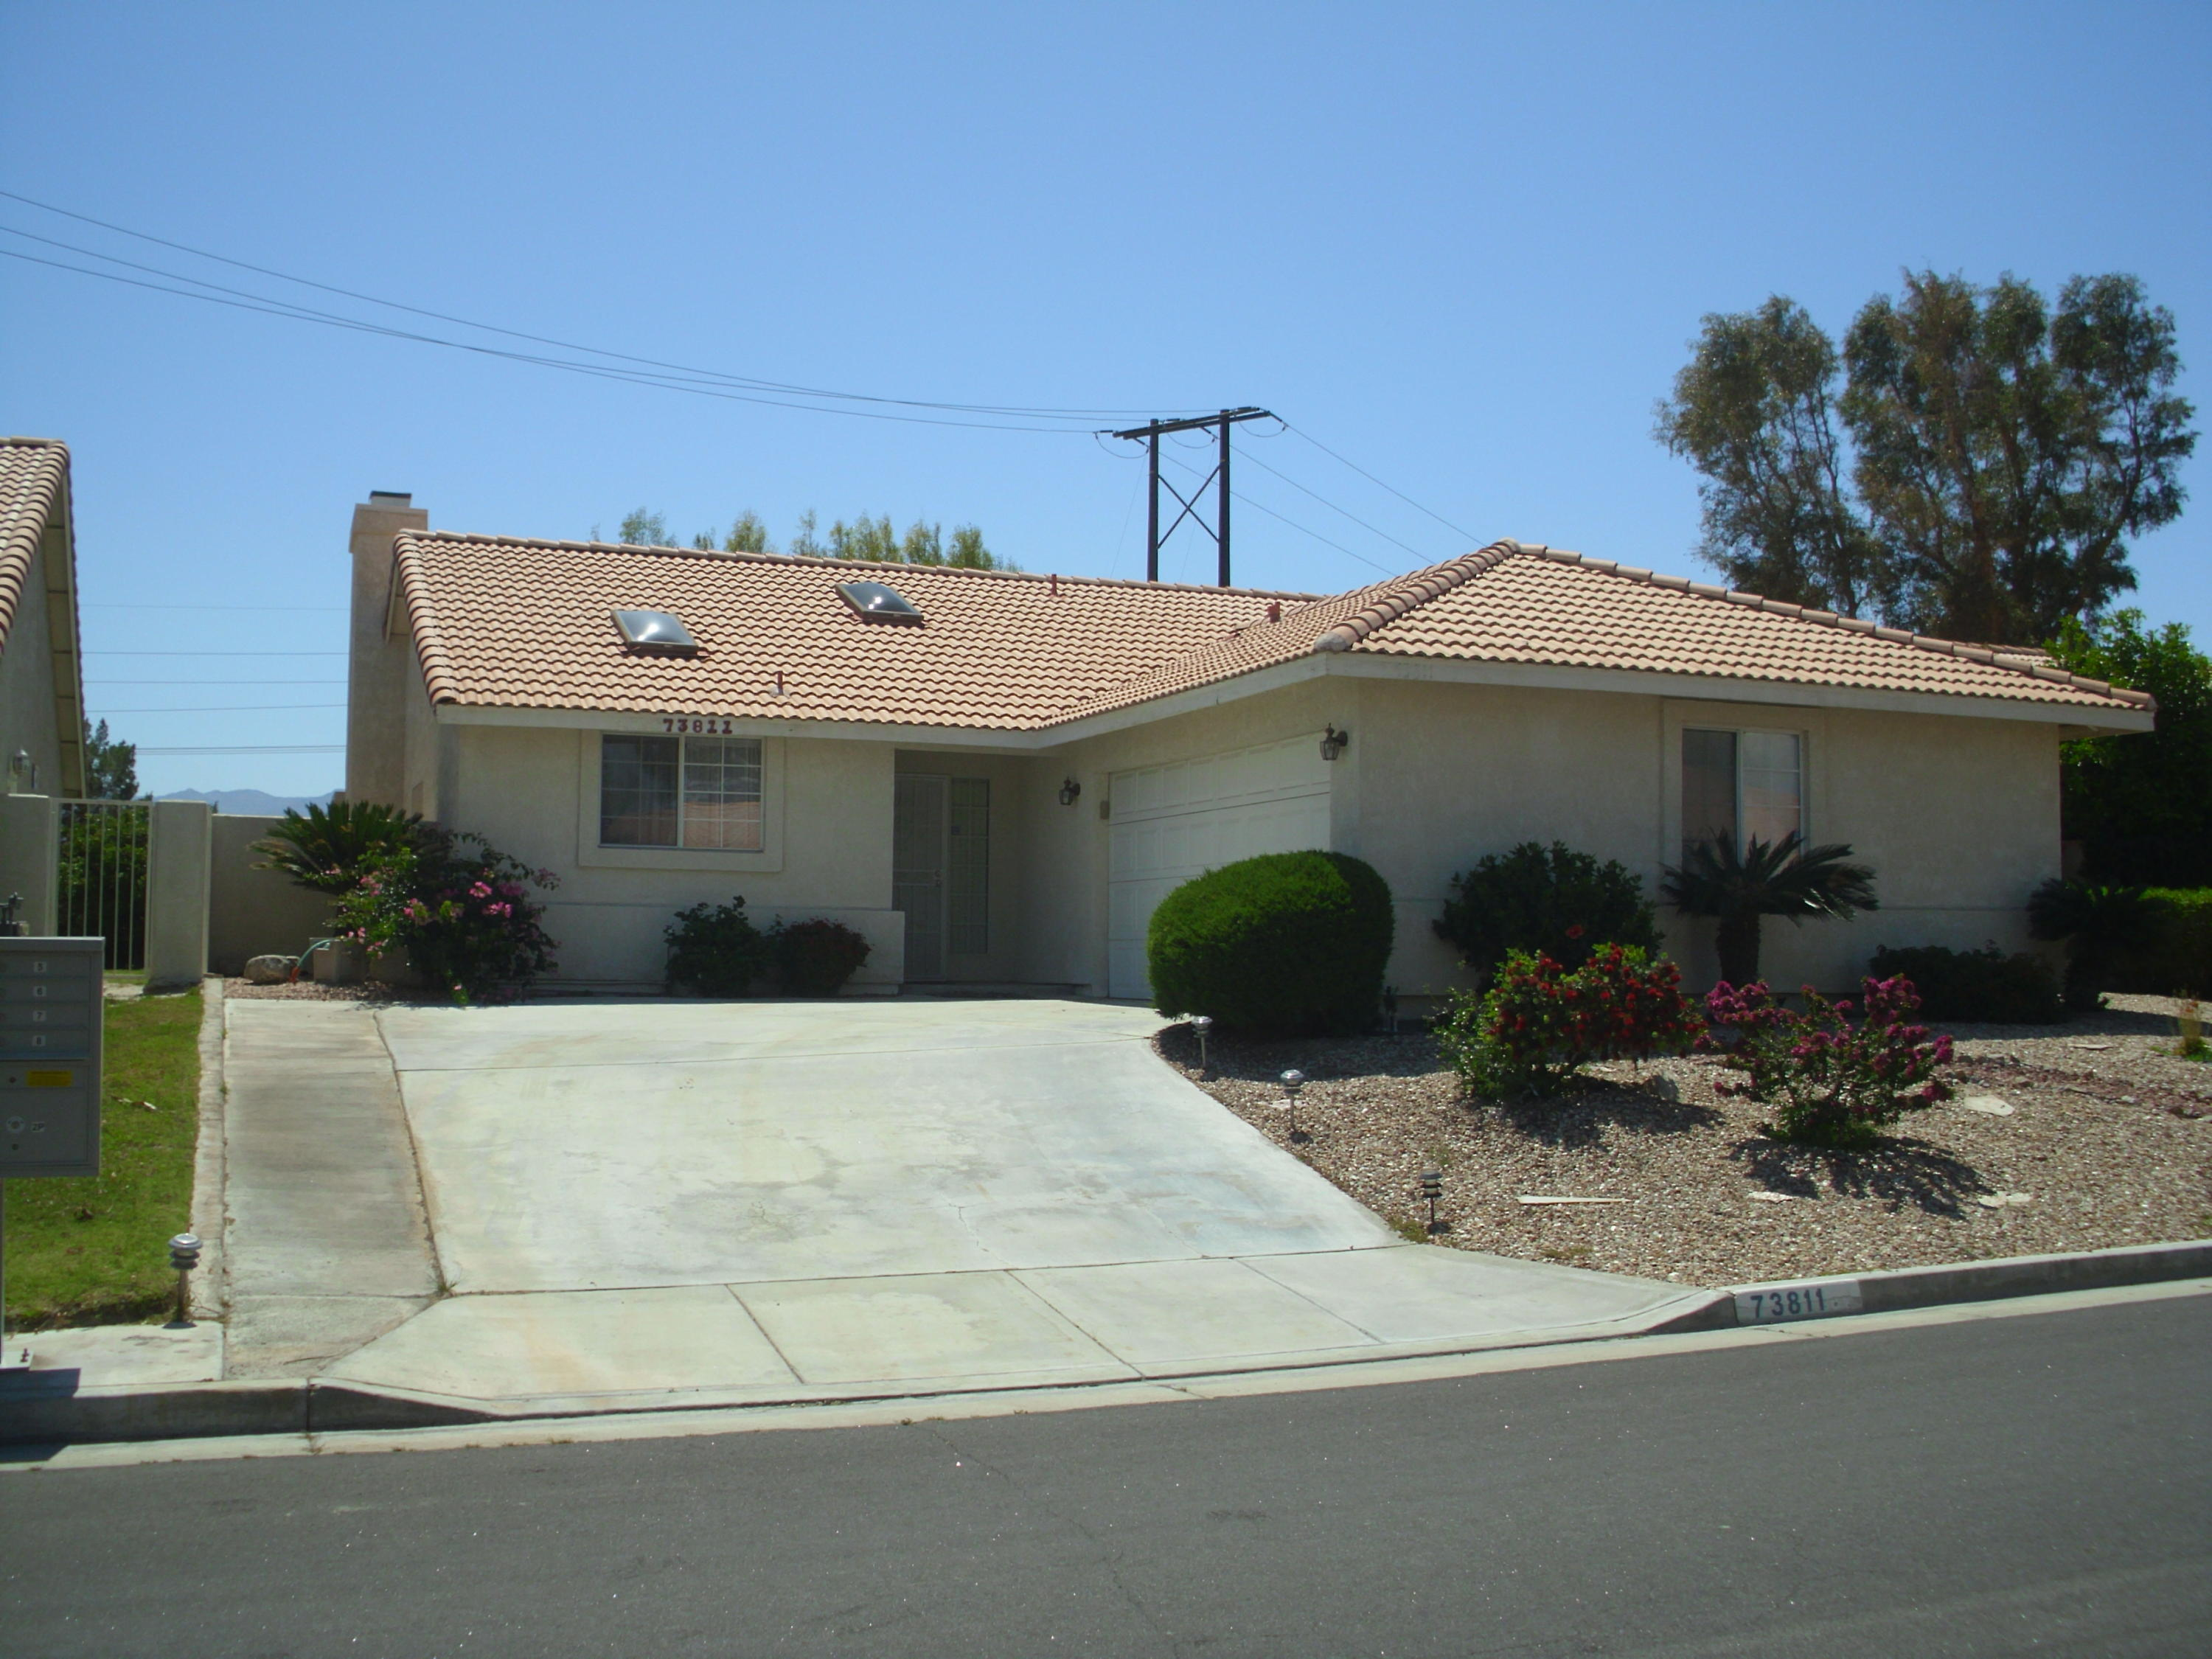 Photo of 73811 White Sands Drive, Thousand Palms, CA 92276